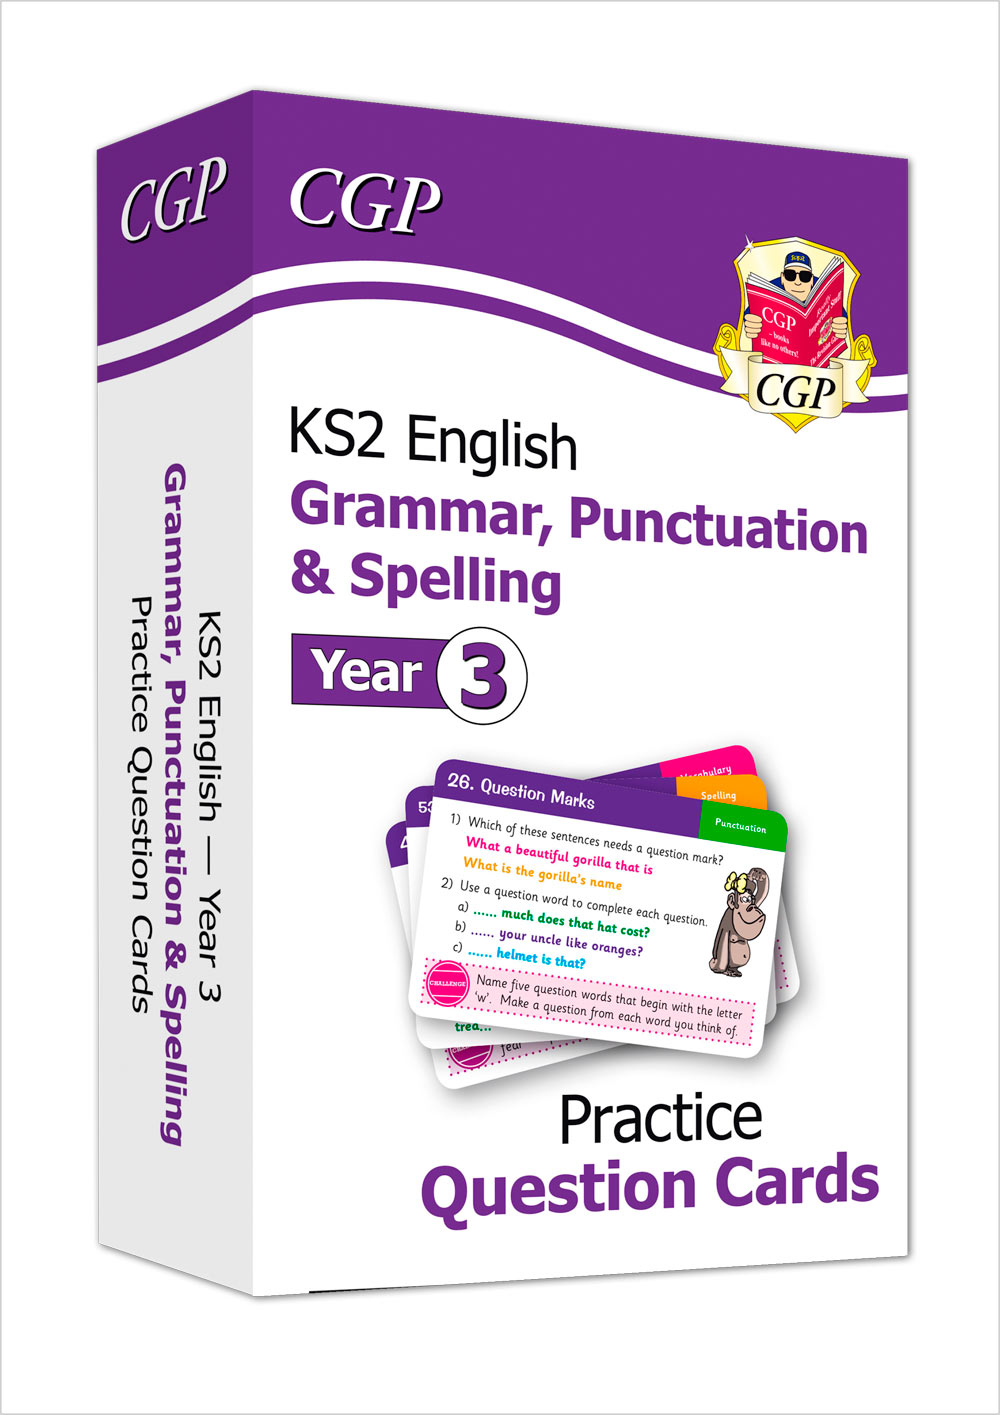 EG3F21 - New KS2 English Practice Question Cards: Grammar, Punctuation & Spelling - Year 3